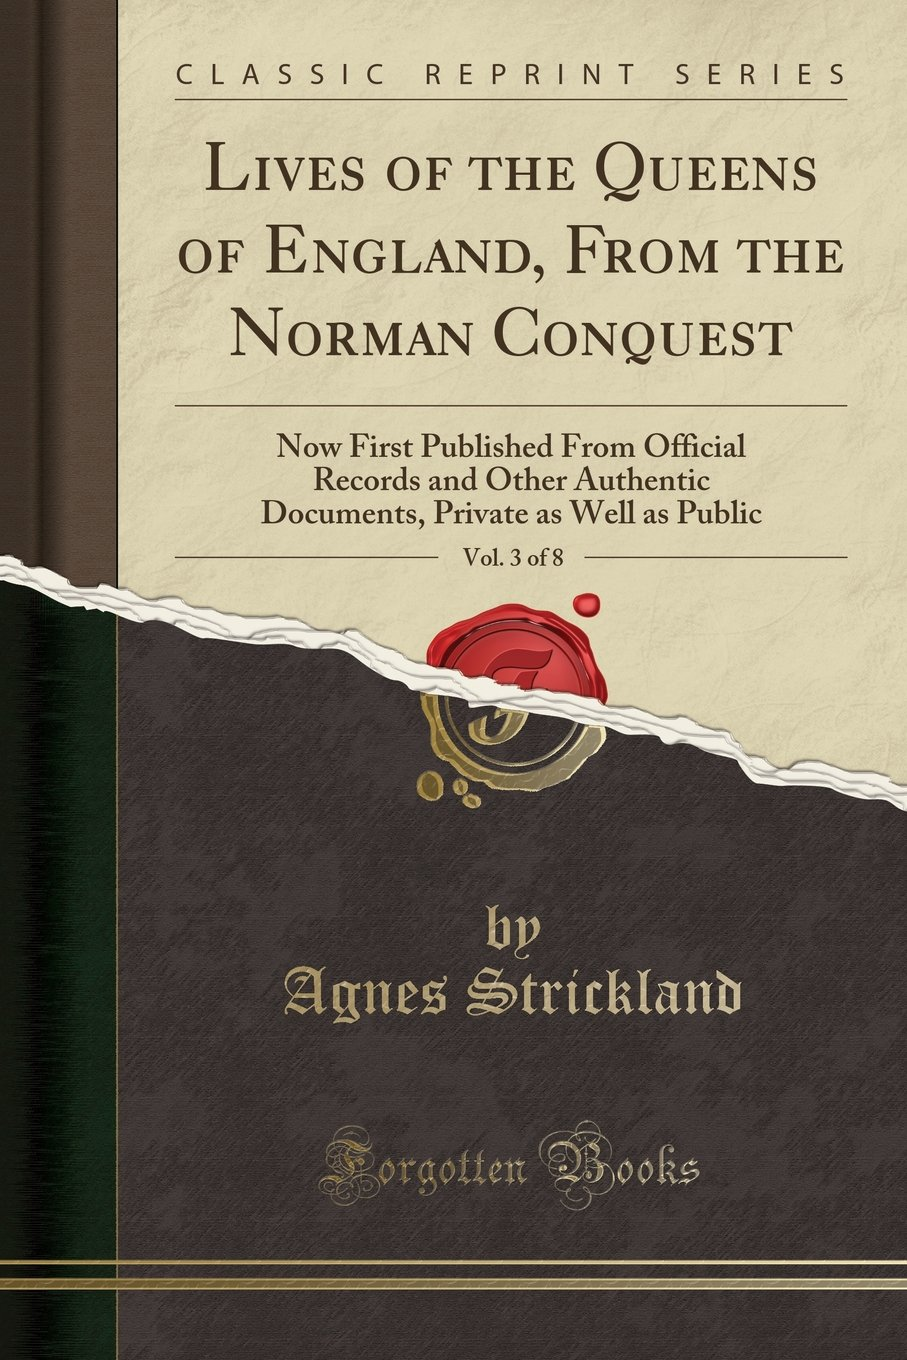 Download Lives of the Queens of England, From the Norman Conquest, Vol. 3 of 8: Now First Published From Official Records and Other Authentic Documents, Private as Well as Public (Classic Reprint) ebook